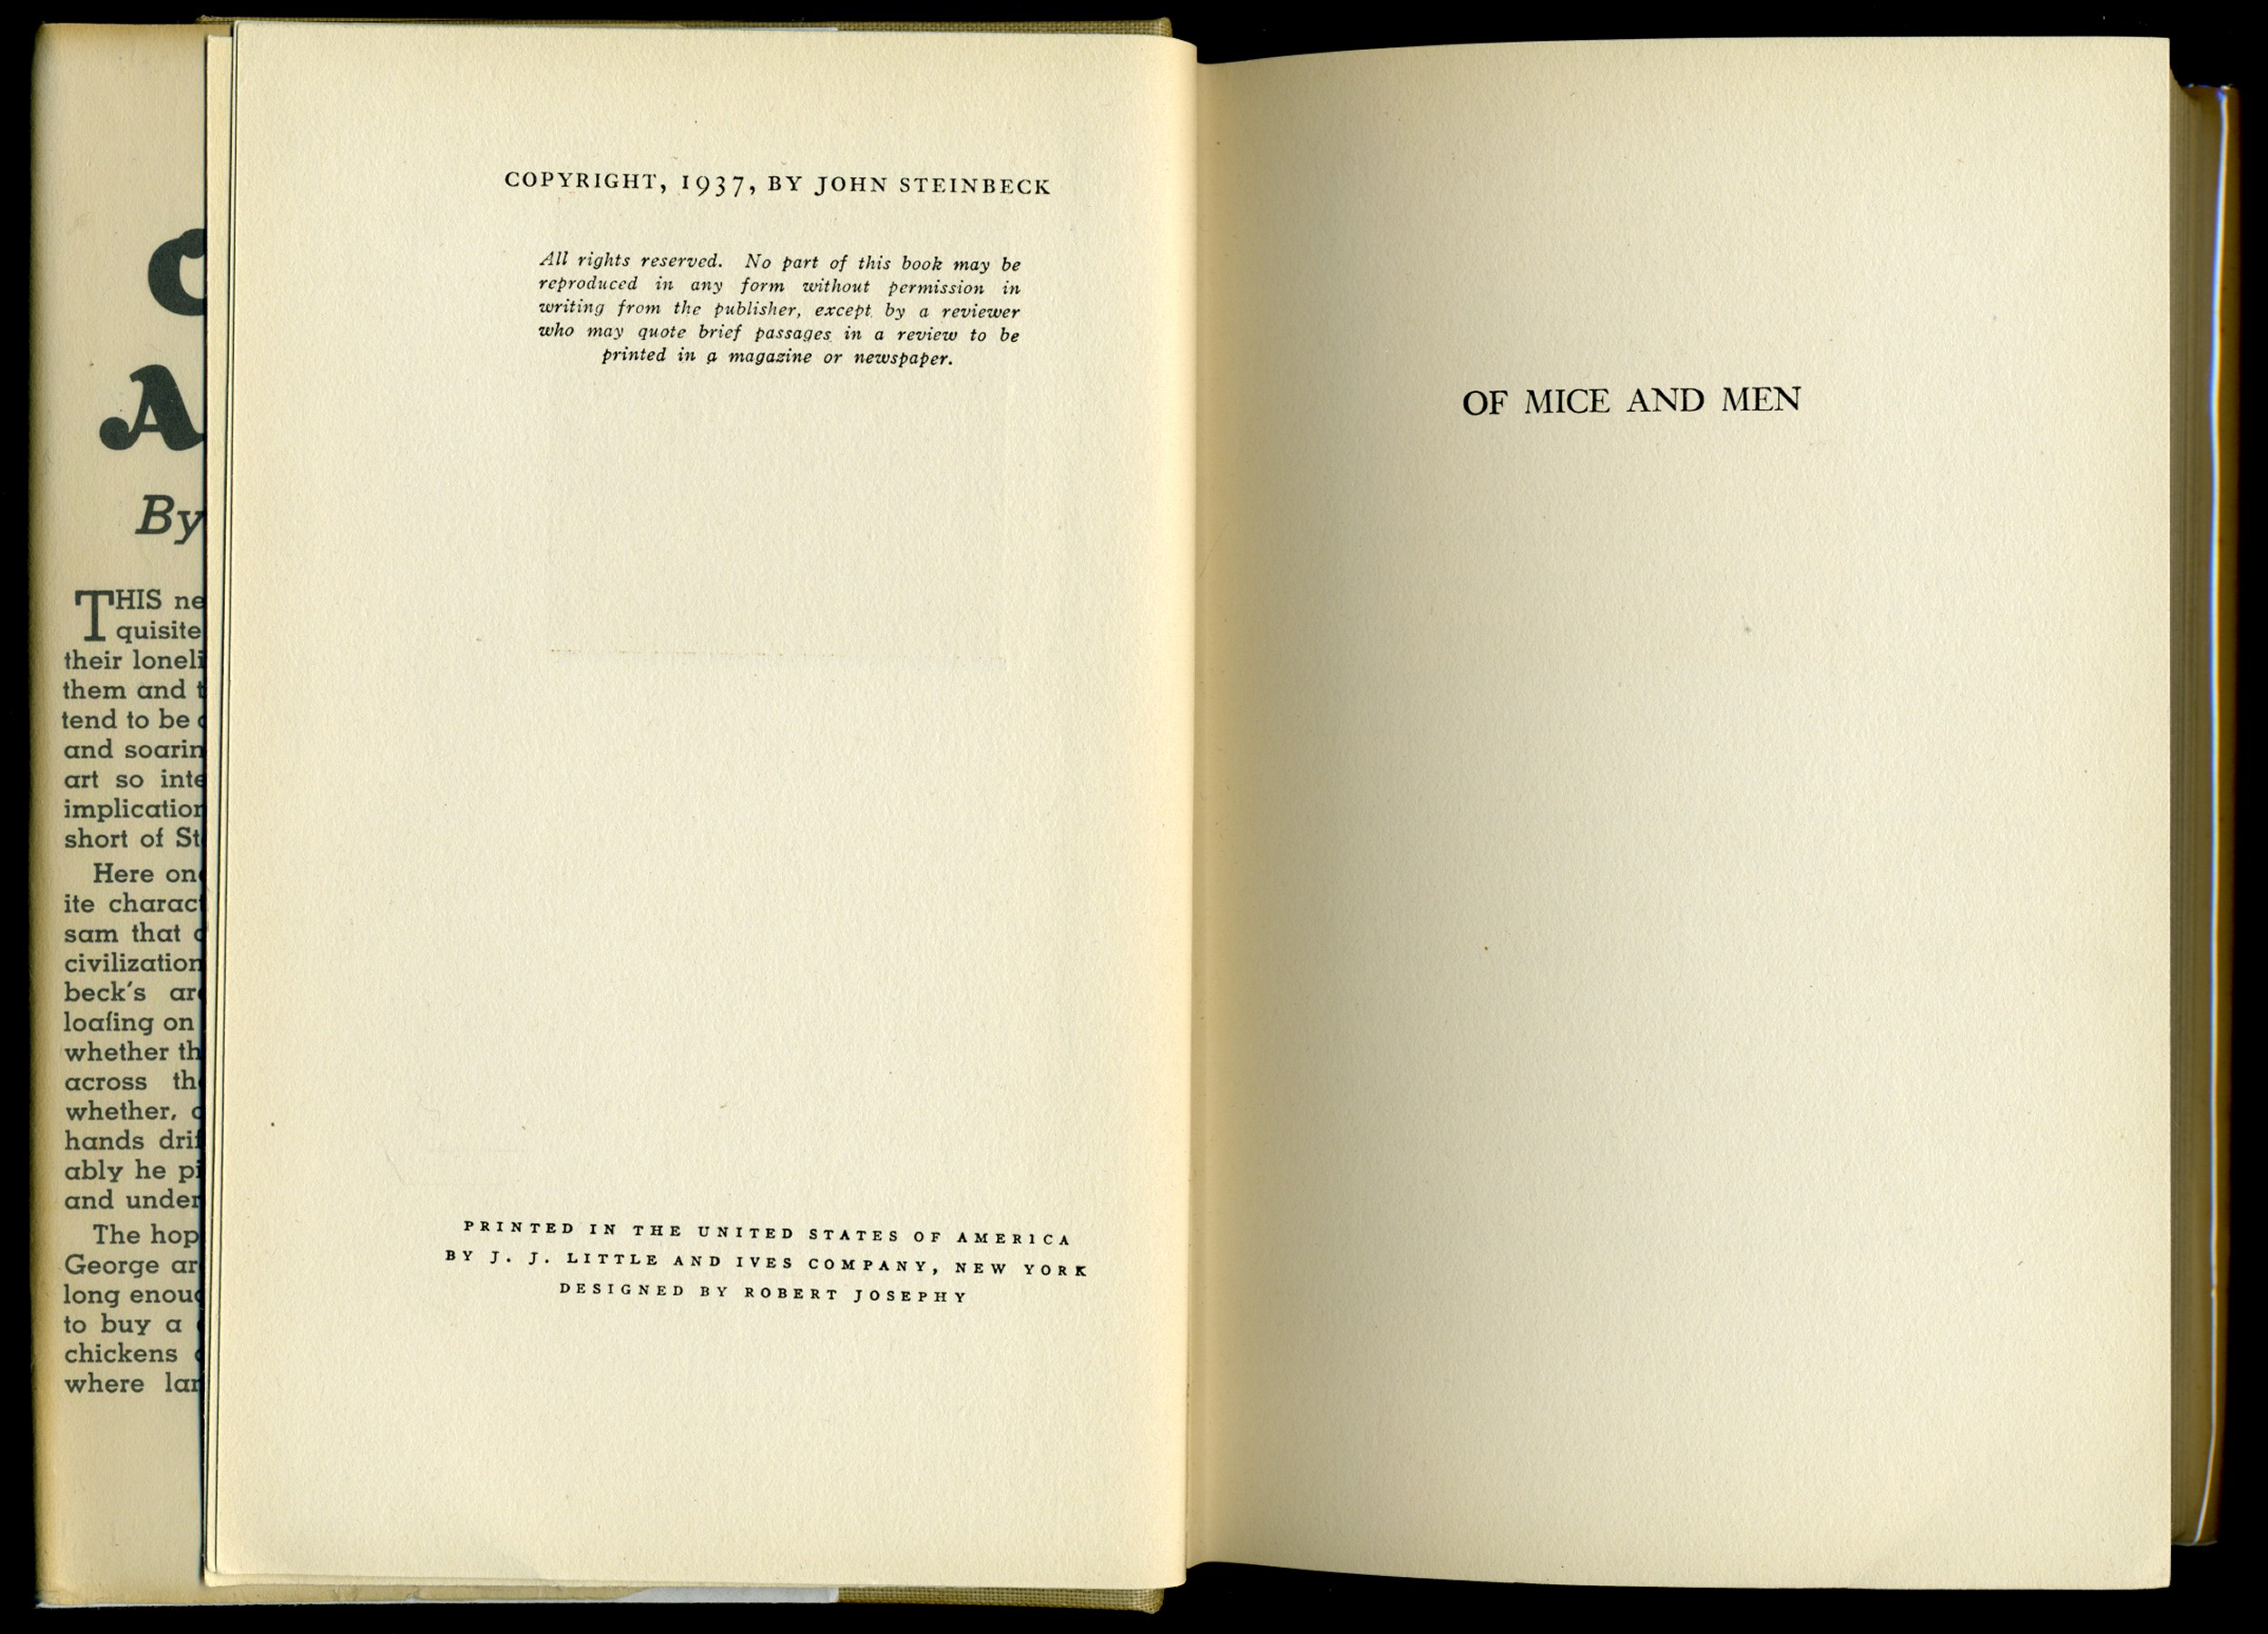 Of Mice And Men By John Steinbeck First Edition  Fonts In Use Printed In The United States Of America By Jj Little And Ives Company  New York Extended Essay Topics English also English Literature Essay Questions  Science Topics For Essays